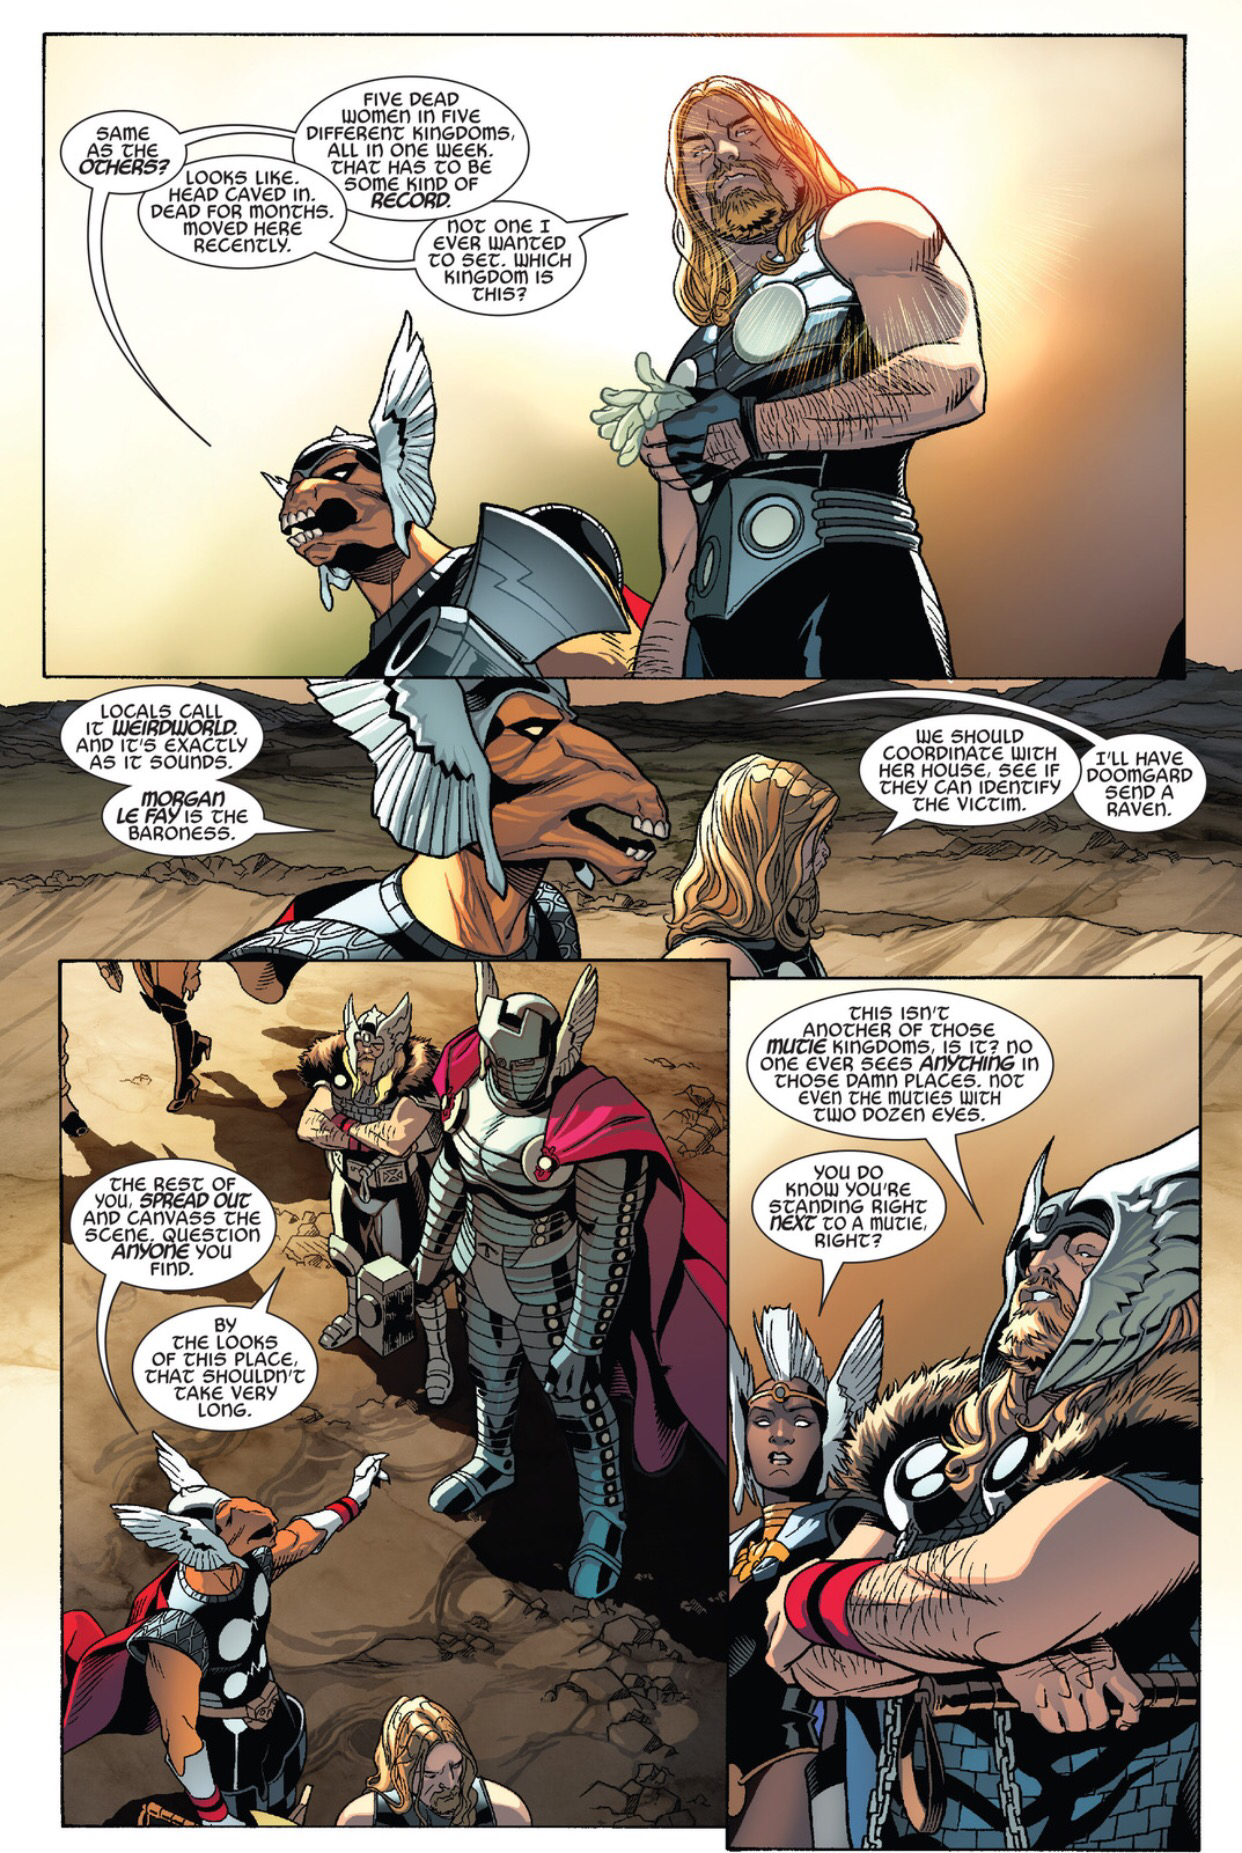 Thors #1 Secret Wars